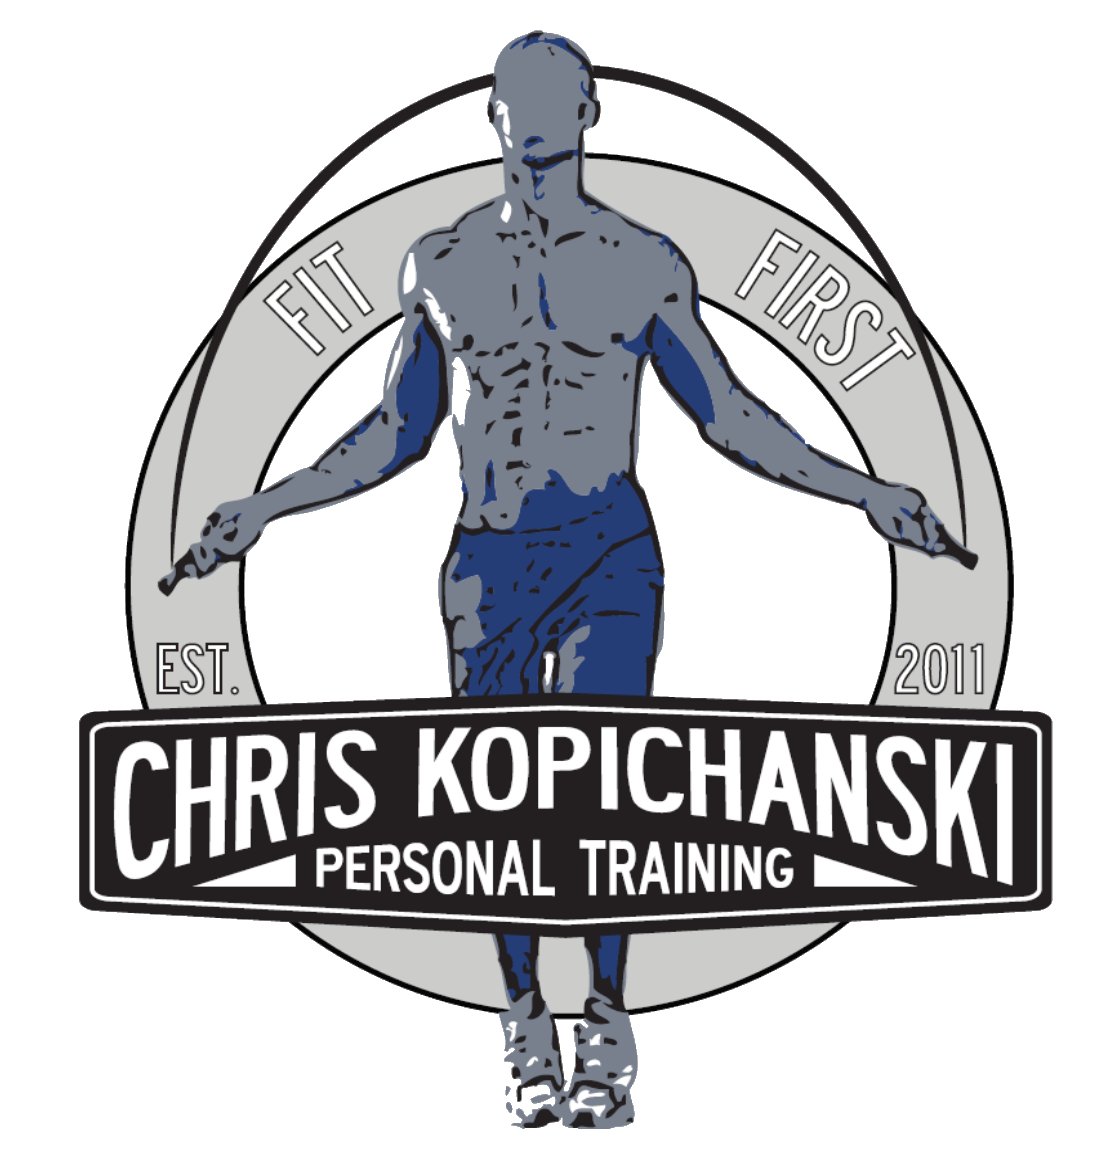 Weight clipart strength and conditioning. Training ppa hithouse about